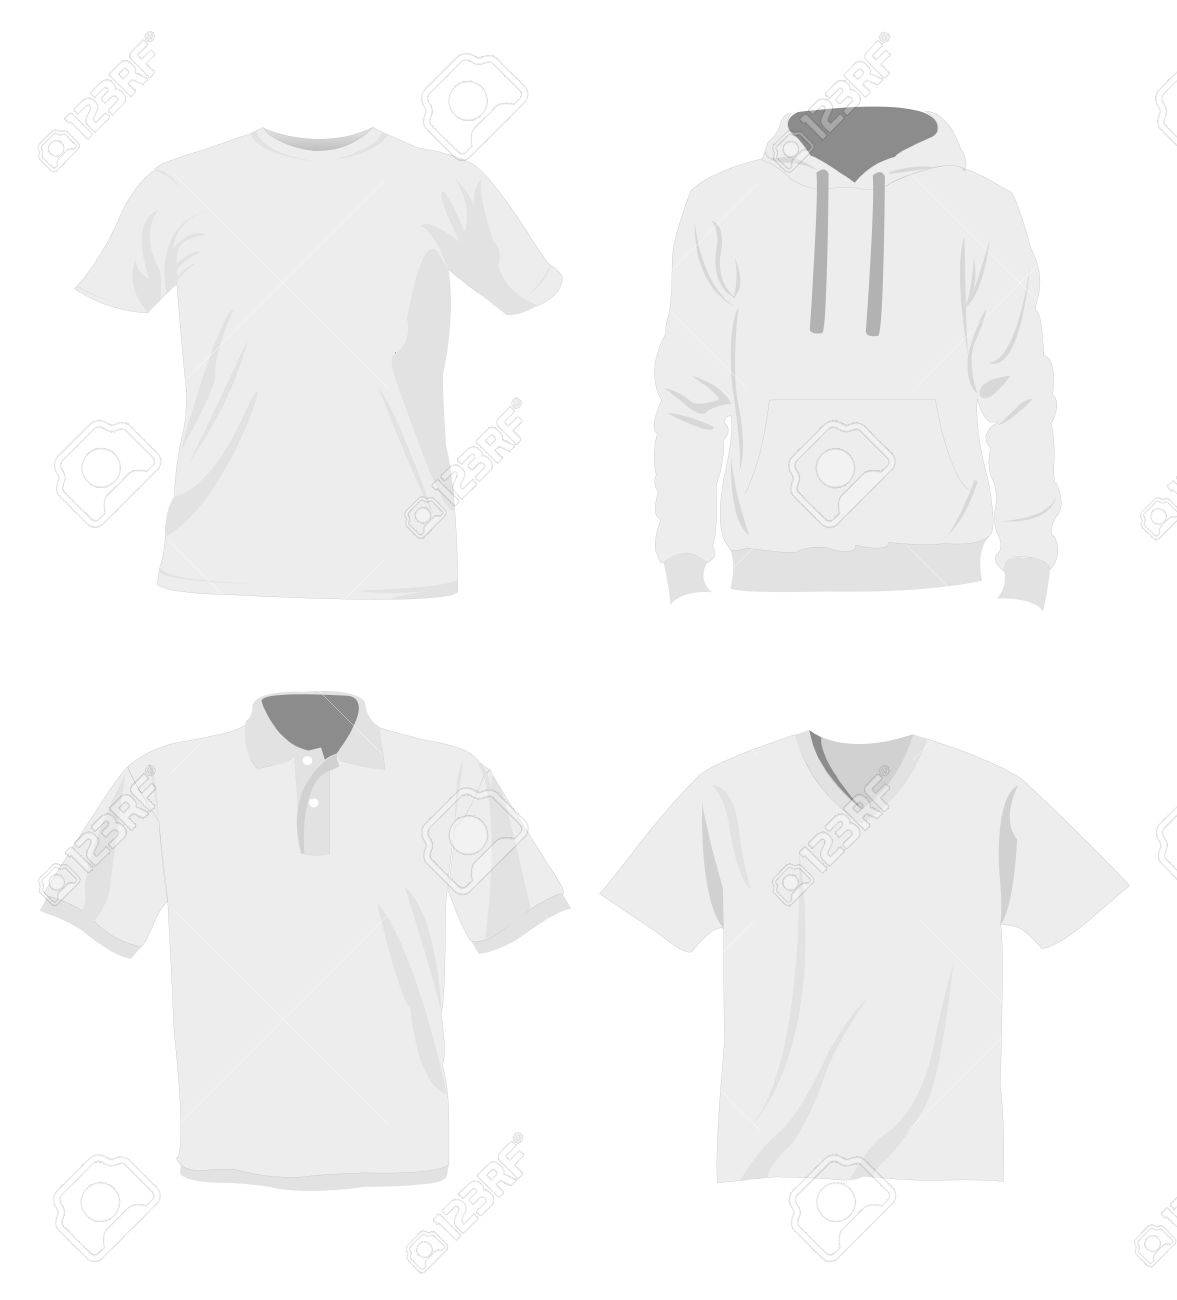 Man T-shirt Templates Royalty Free Cliparts, Vectors, And Stock ...